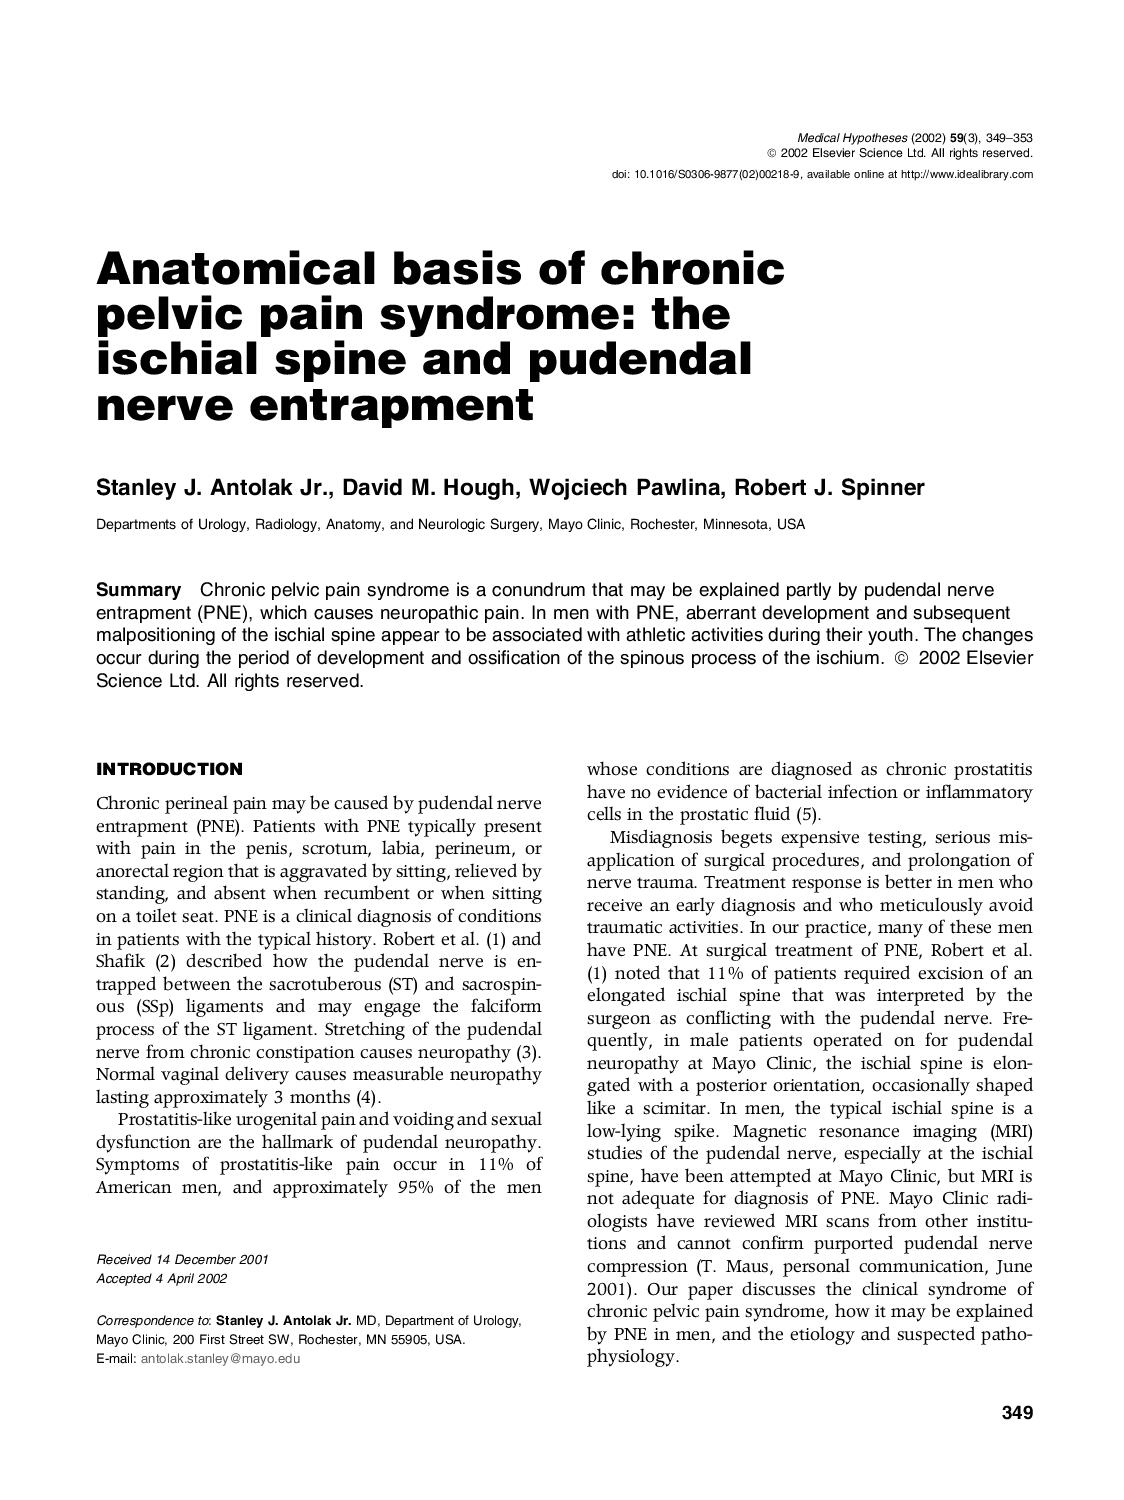 Pudendal Nerve Entrapment Ischial Spine By Kirk Andrew Issuu